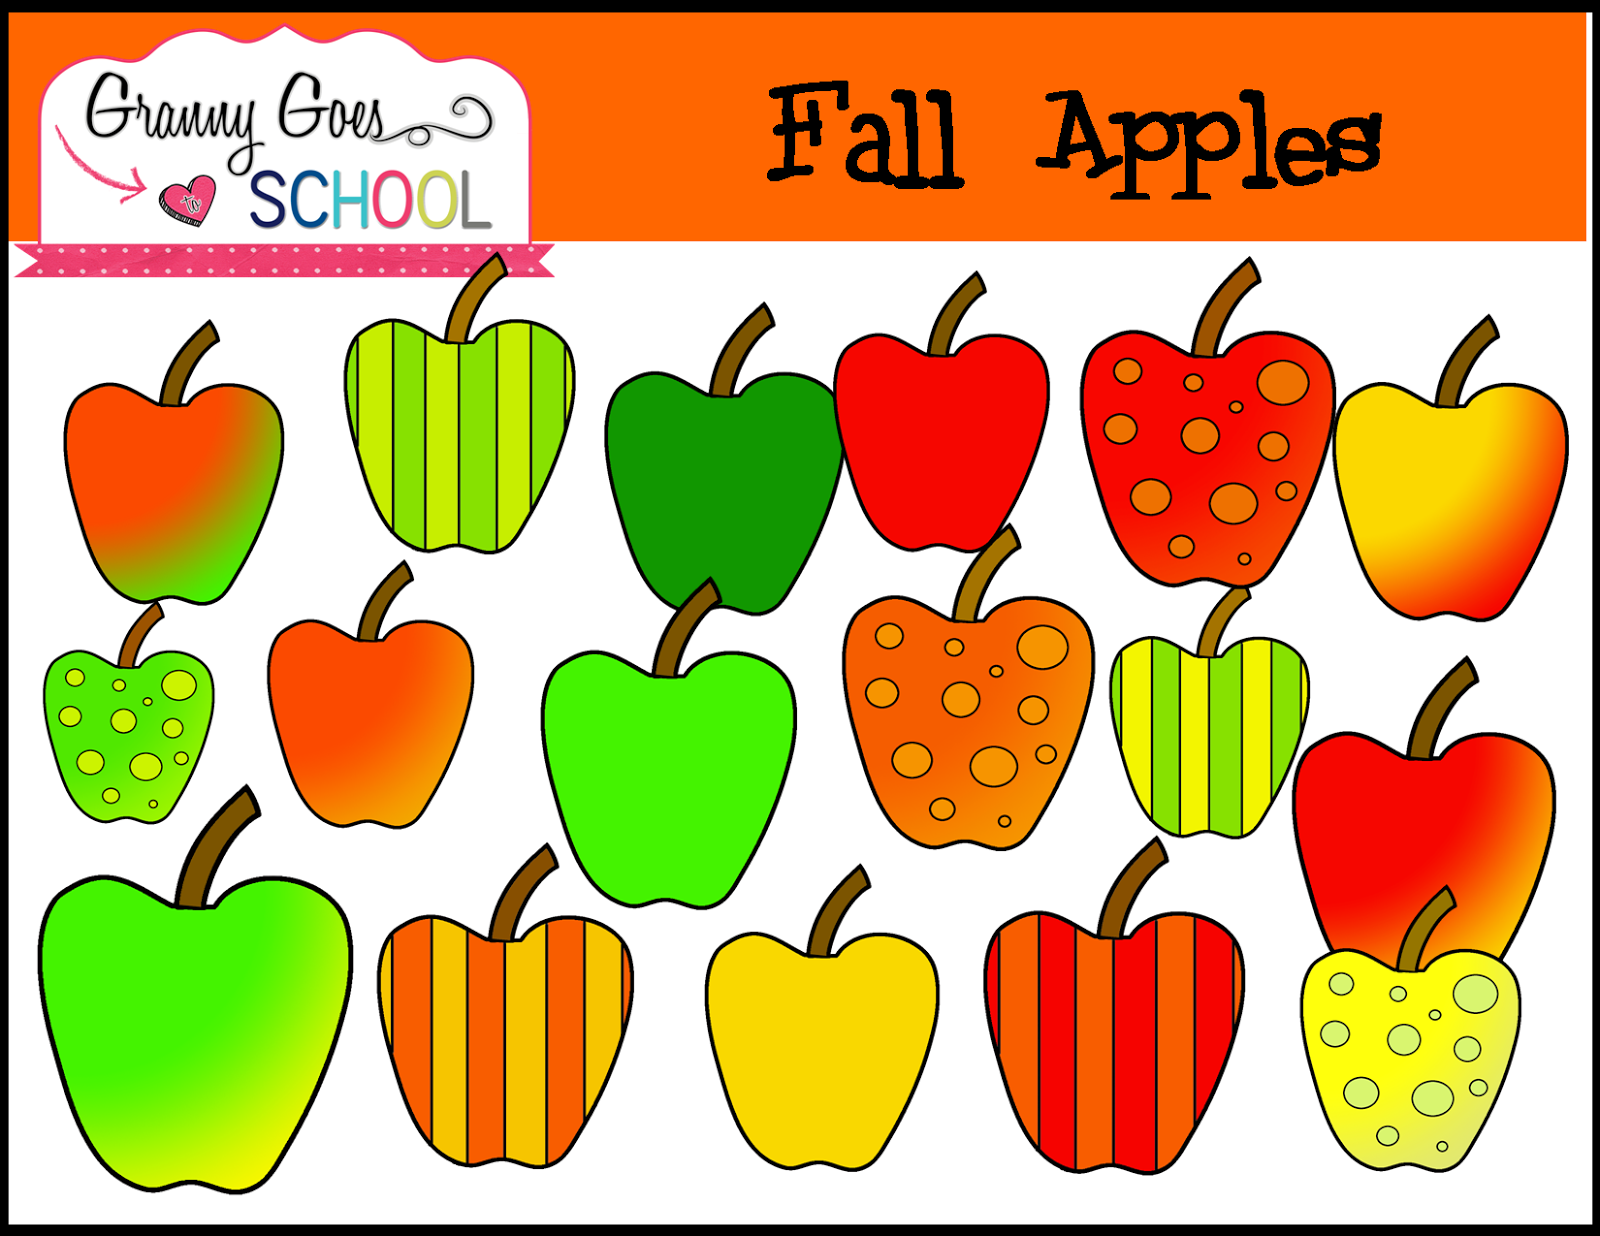 http://www.teacherspayteachers.com/Product/Fall-Apples-Free-Clip-Art-1452424